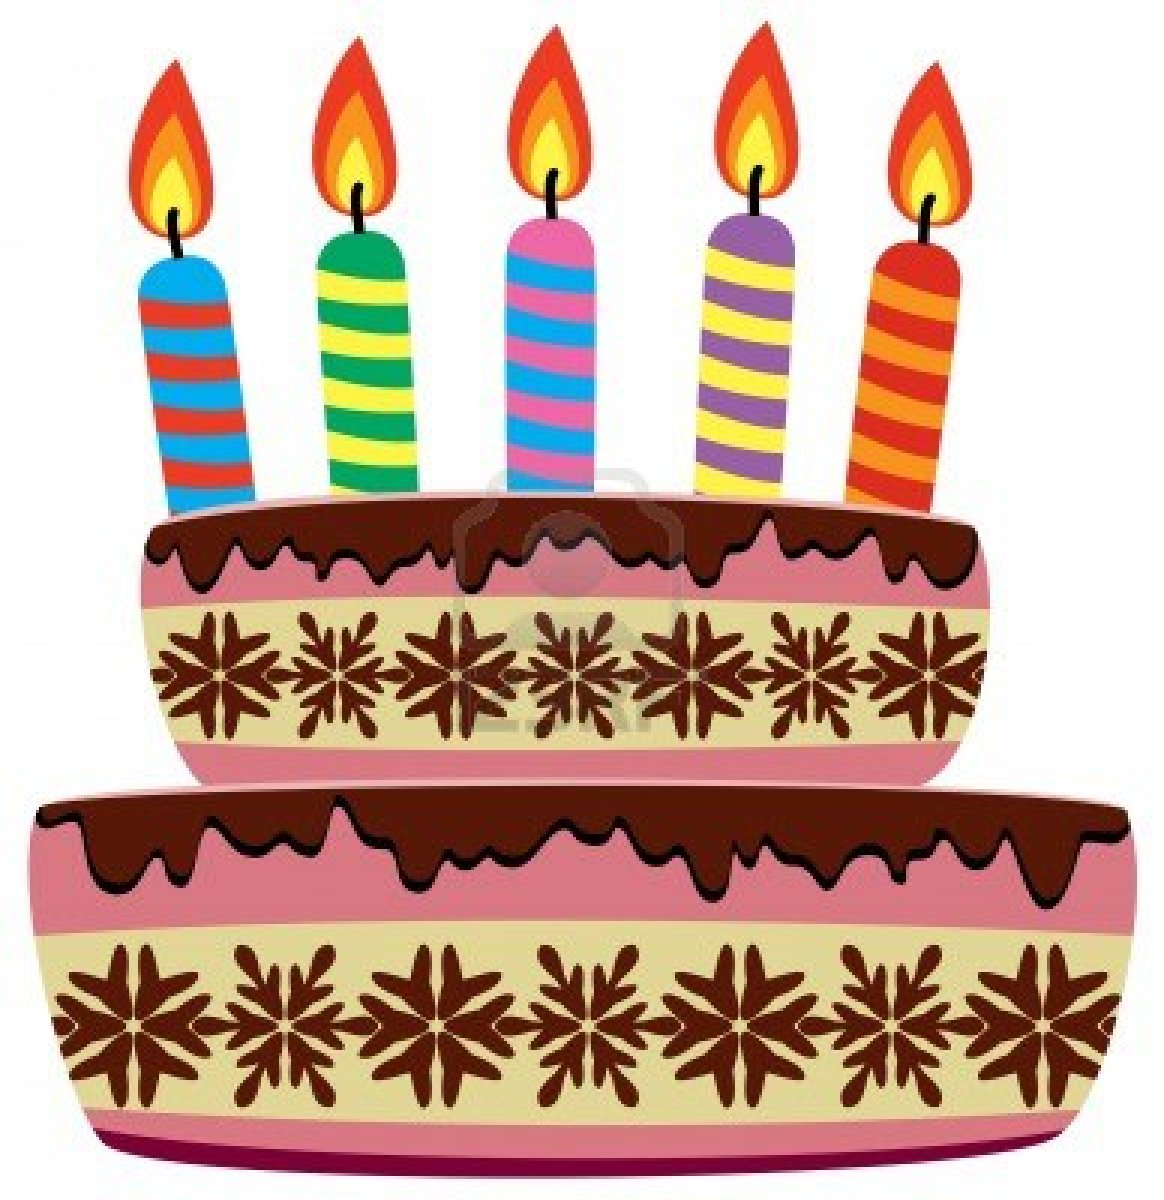 Enjoyable Tog Hackerspace 9206919 Vector Birthday Cake With Burning Candles Funny Birthday Cards Online Elaedamsfinfo